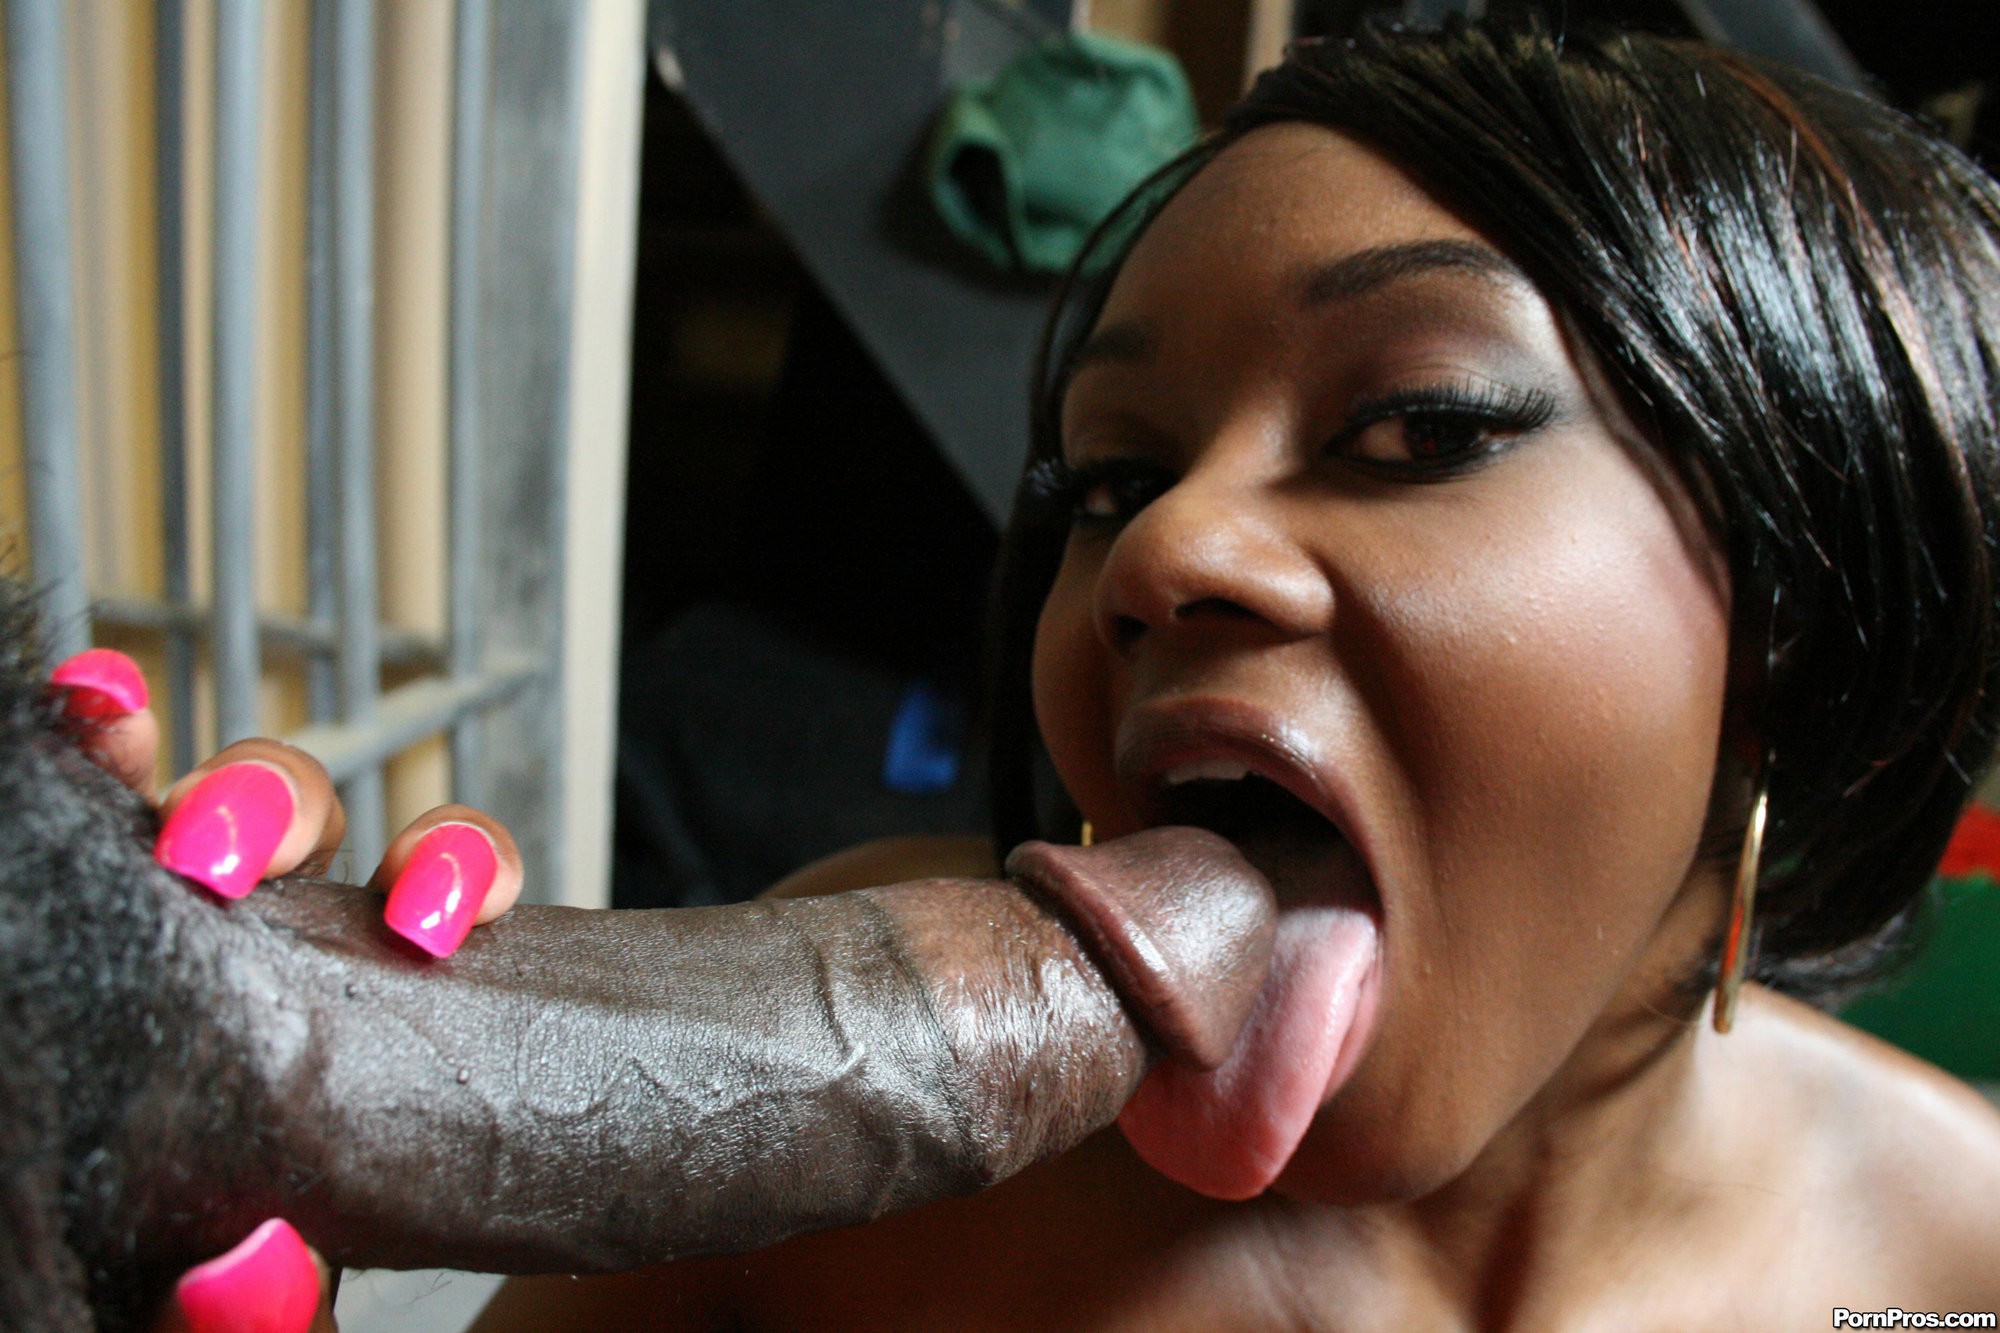 Hot Black Girl Gets Her Beauty Big Booty Flipped And Fucked Everywhich Way